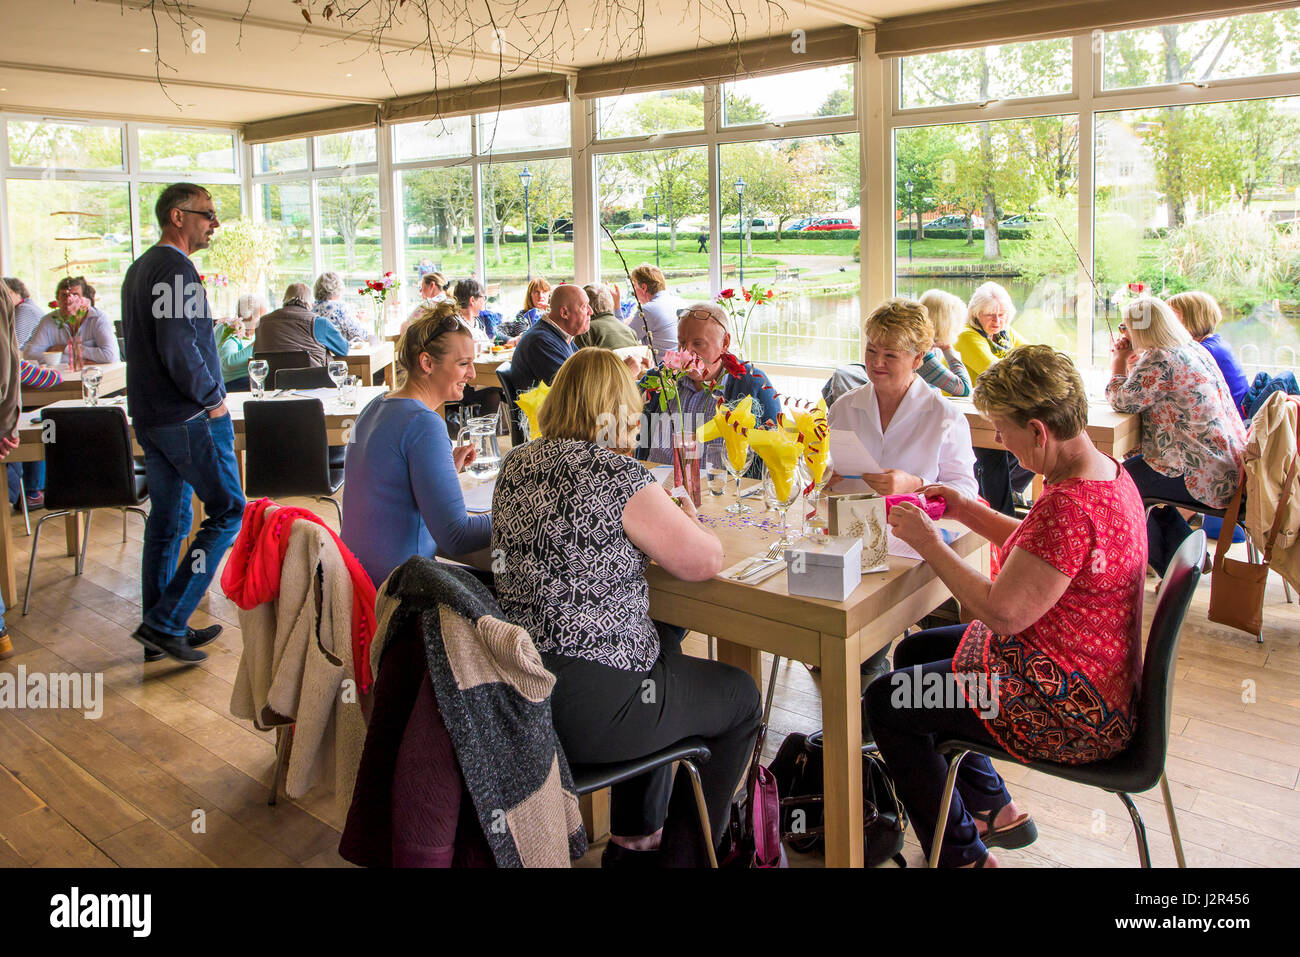 Diners enjoying a meal at the Lakeside Restaurant in Newquay Cornwall. - Stock Image